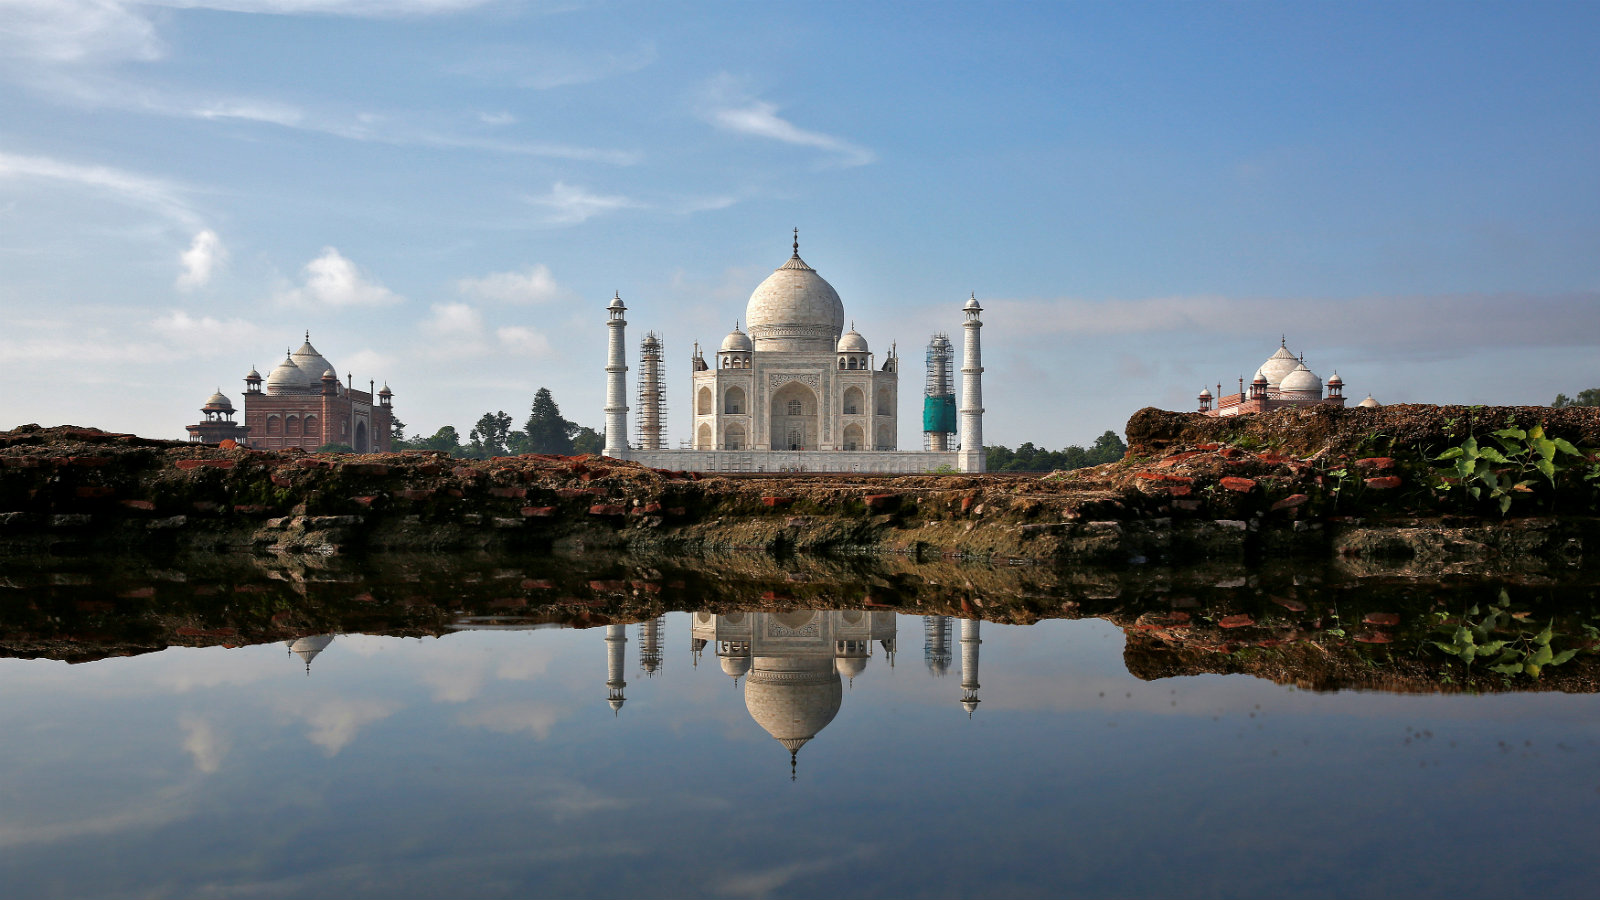 Judges chide Indian govt over state of Taj Mahal